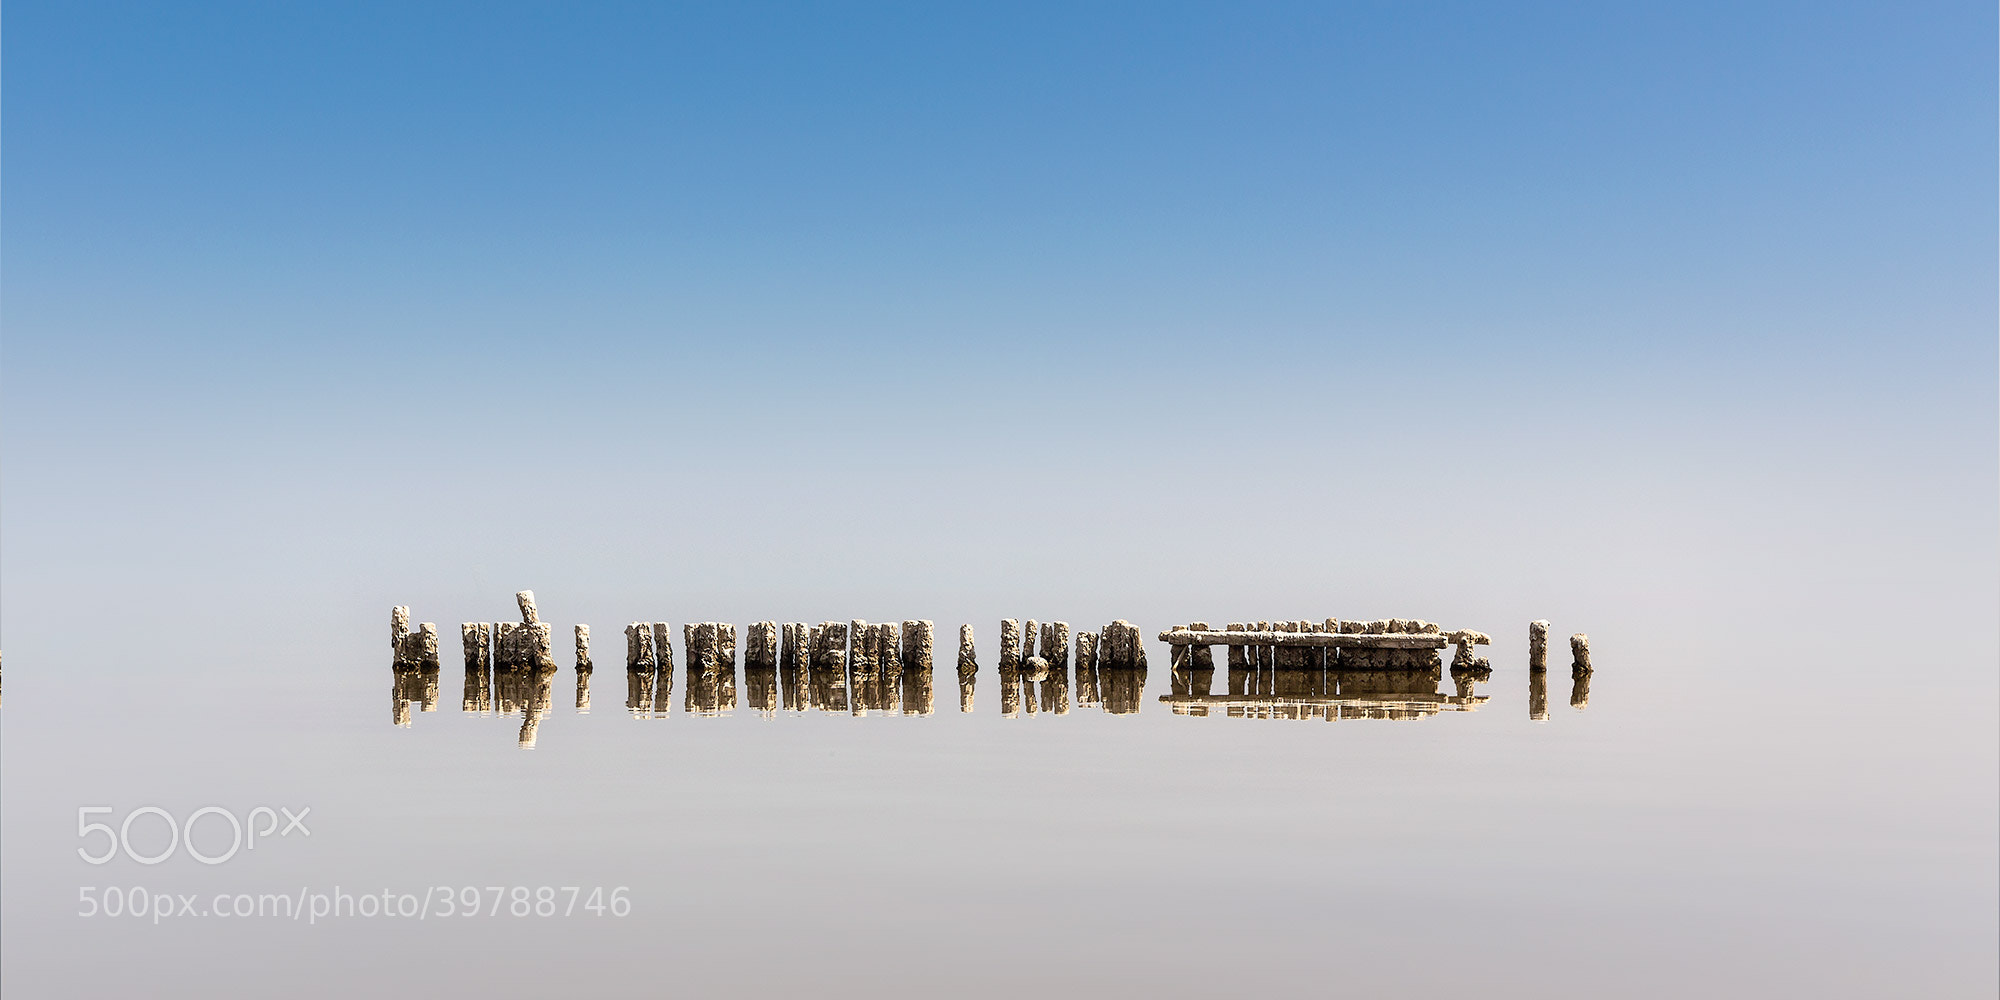 Photograph No Horizon by Paul Reiffer on 500px